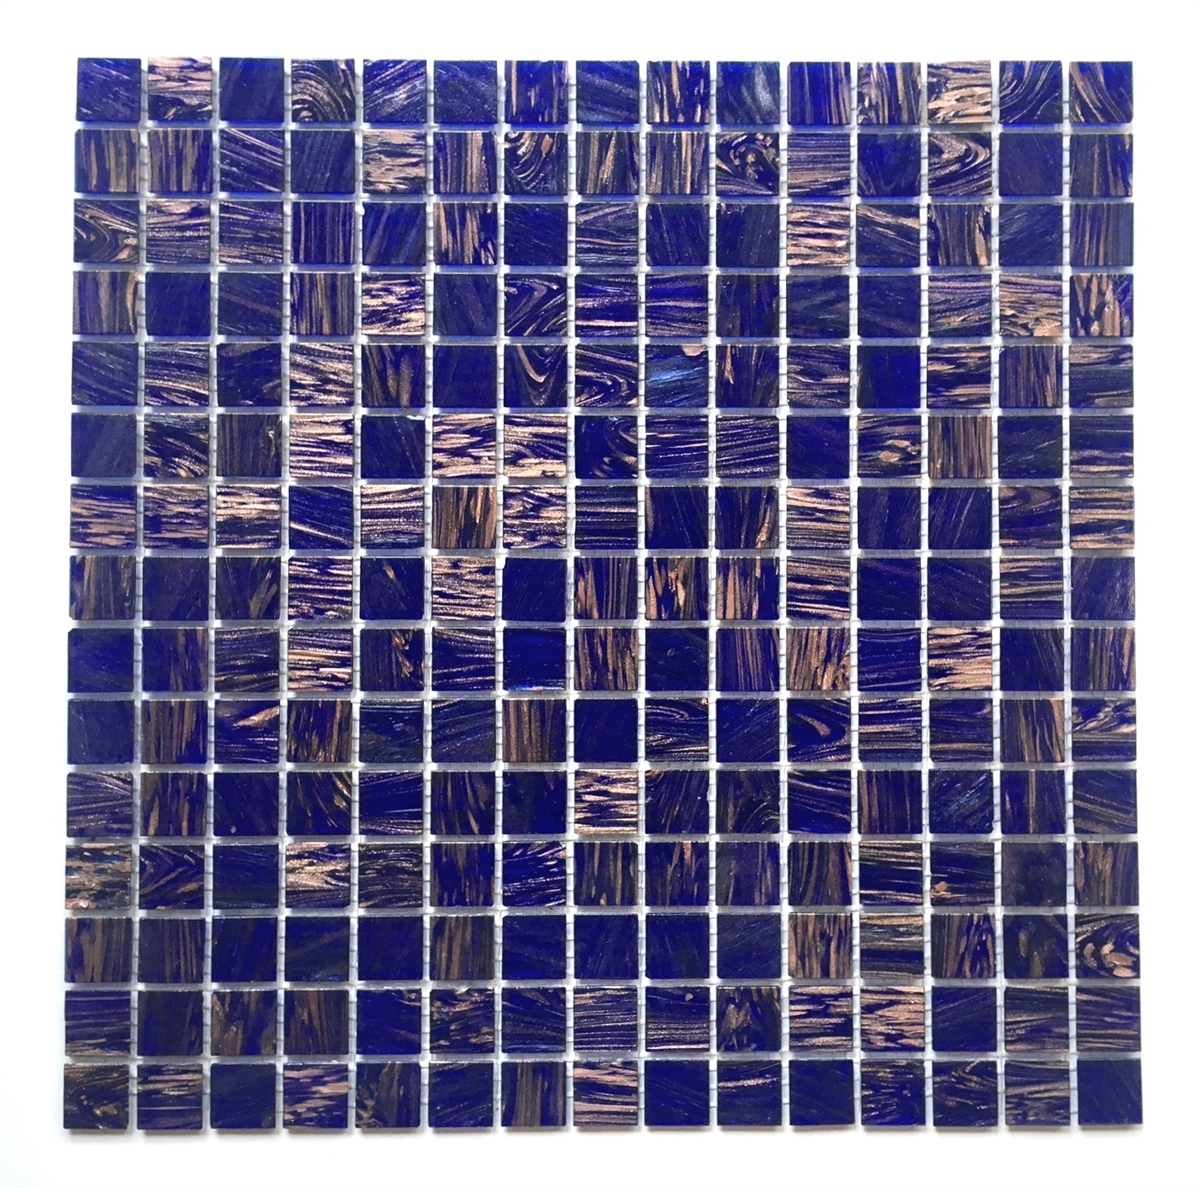 3 4 X Blue Violet Glimmer Gl Mosaic Wall Tile